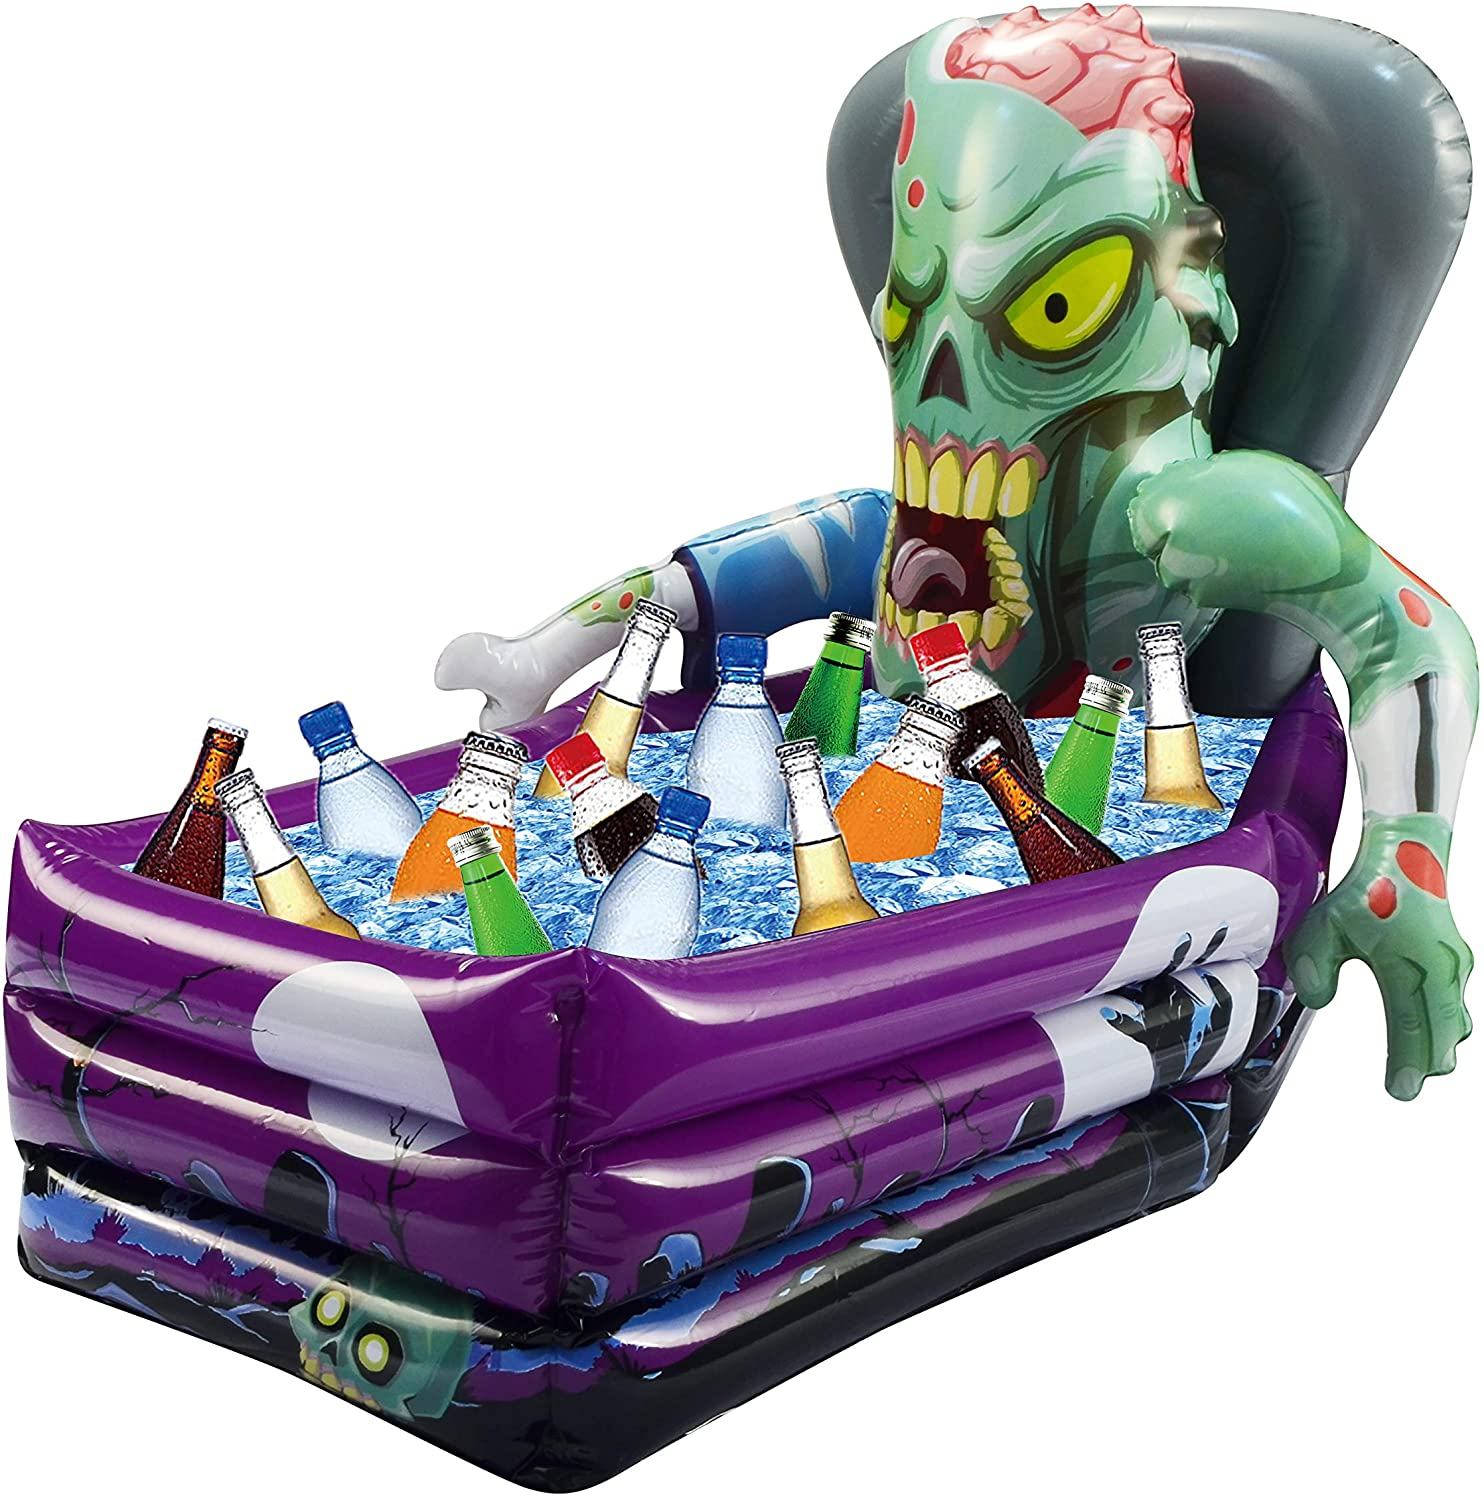 Halloween Party Inflatable Zombie Drink Cooler and Decoration (26x 24x 38 Approximate Inflated Size)